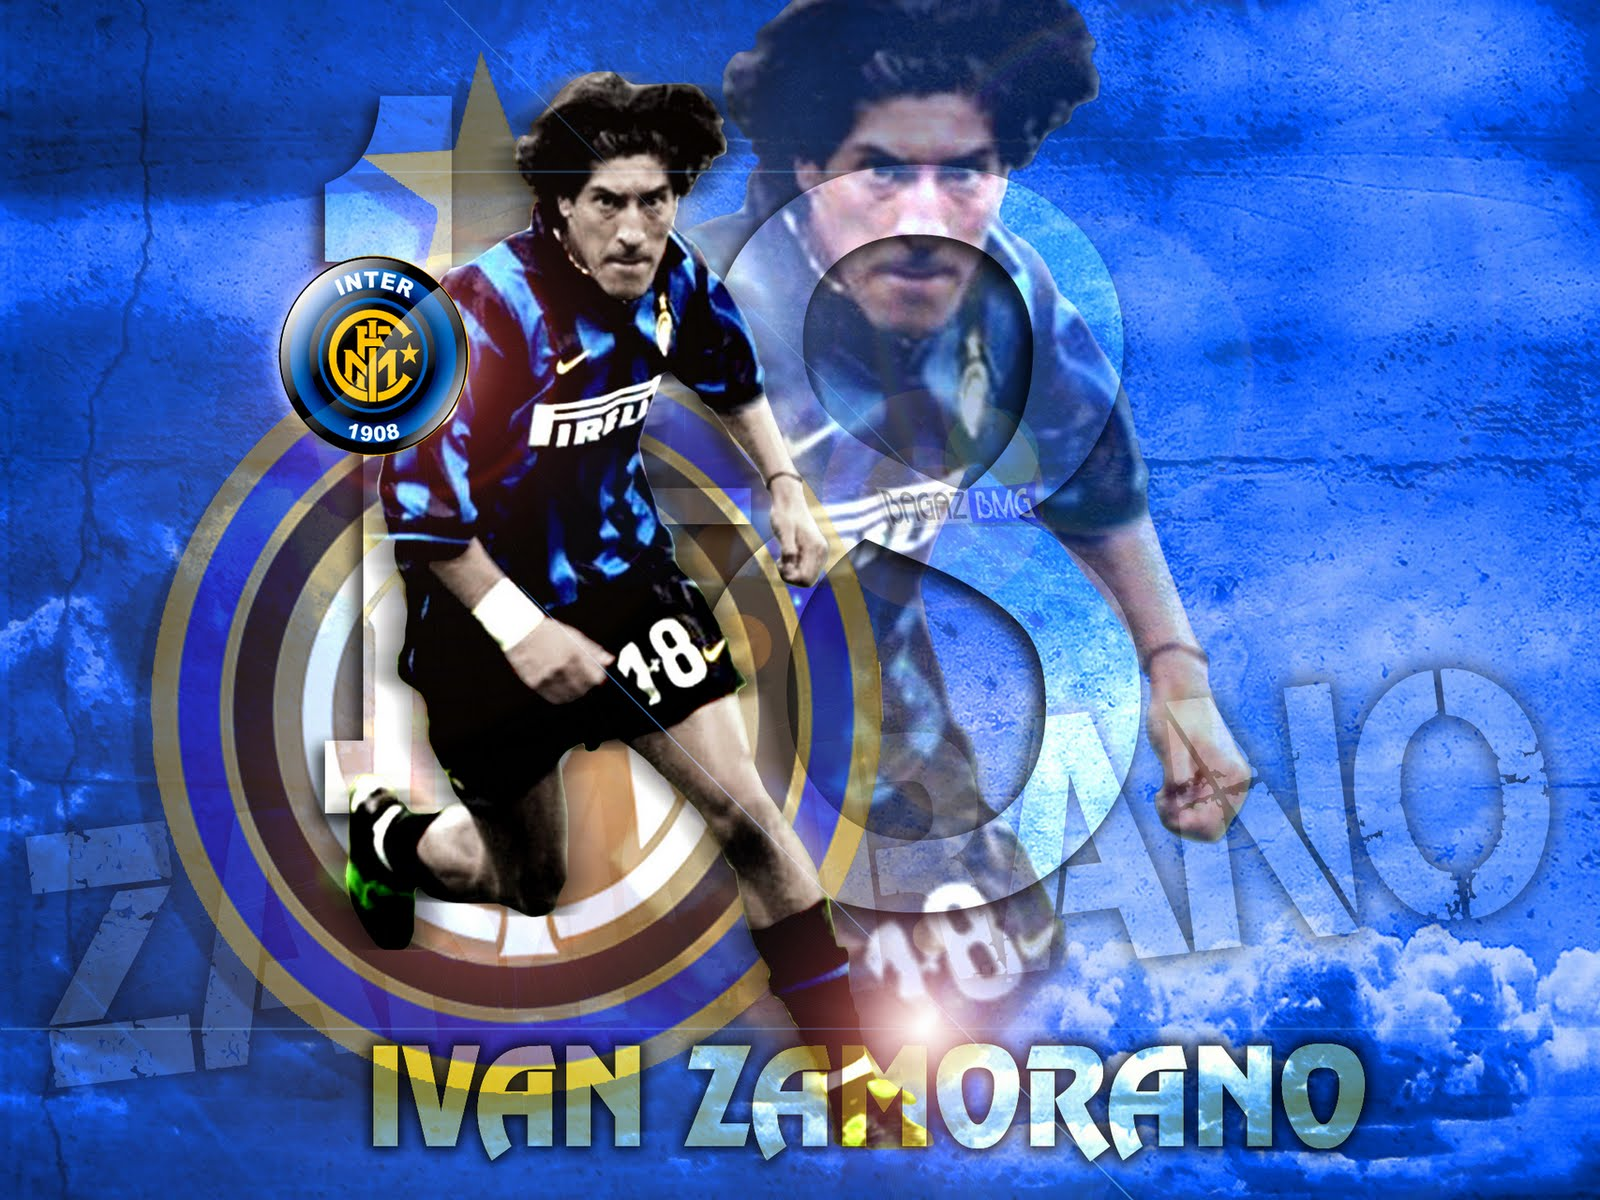 ivan zamorano wallpaper, chile footballer, madrid, inter milan